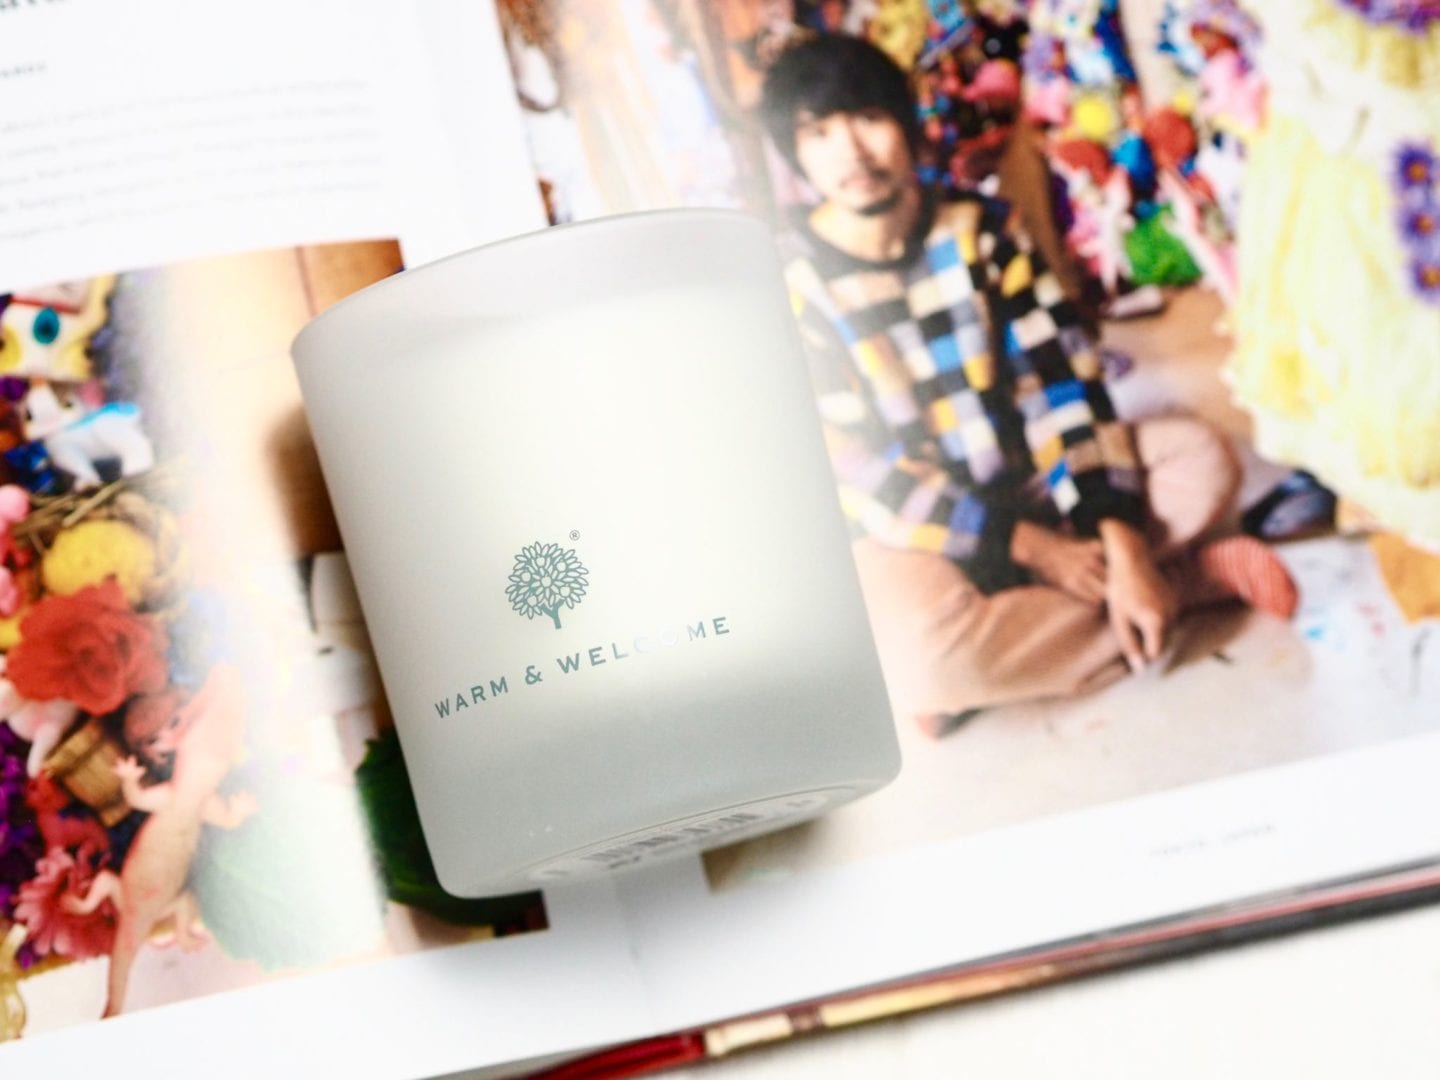 Crabtree & Evelyn 'Warm & Welcome' candle